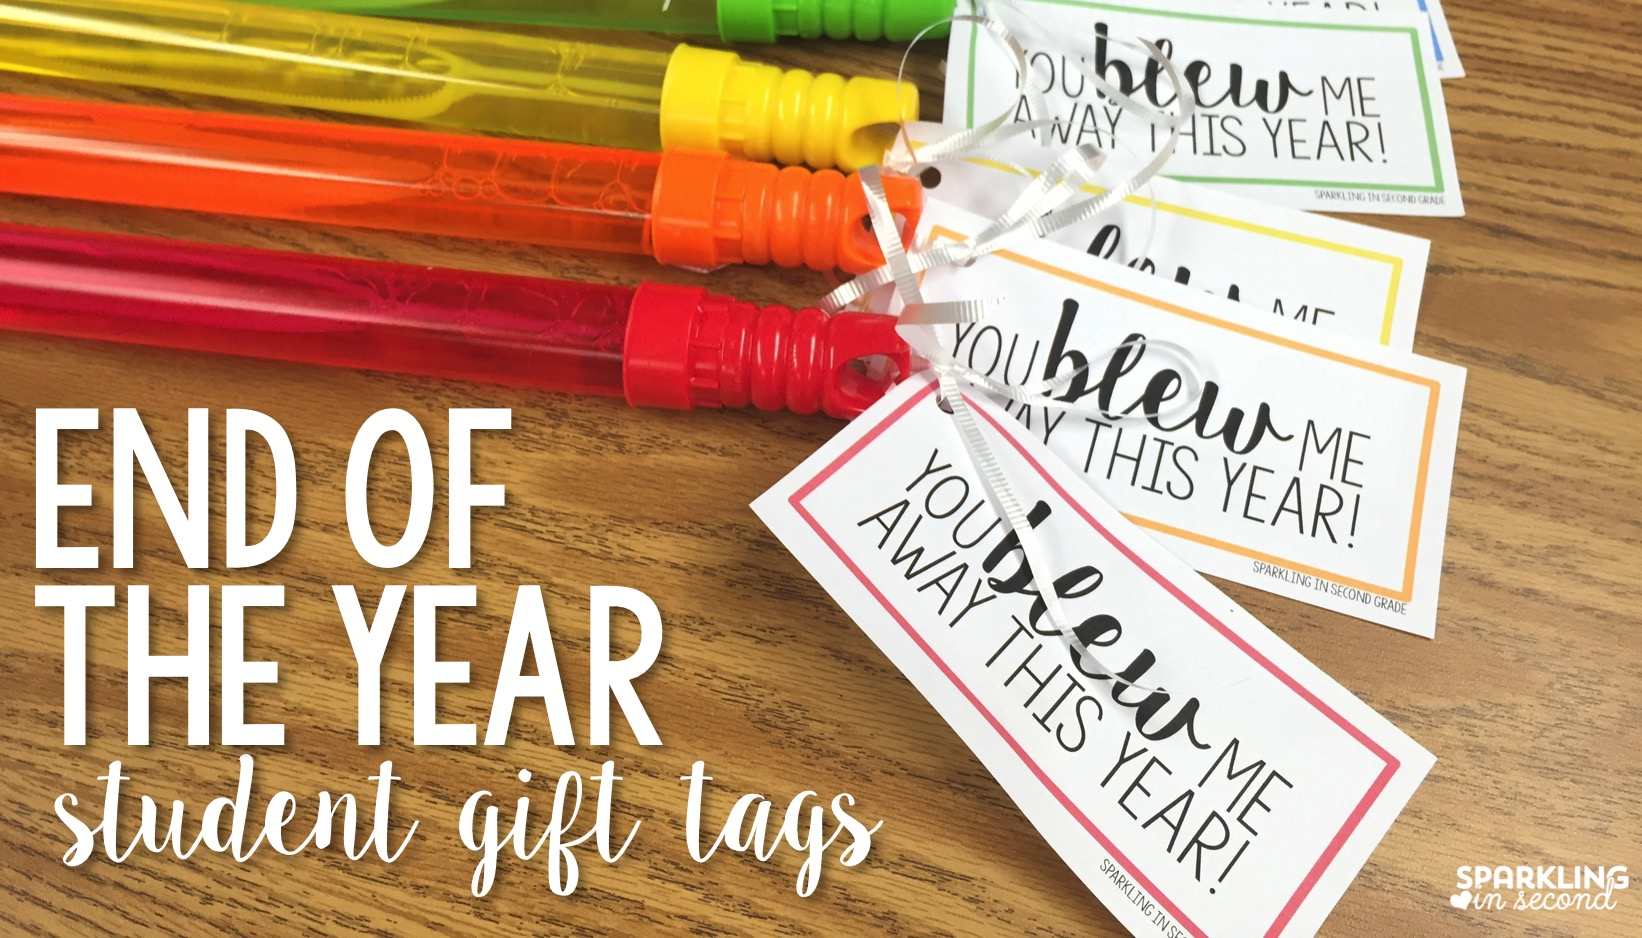 image regarding You Blew Me Away This Year Free Printable named Close of Calendar year Reward Bubble Tags - Glowing within Minute Quality